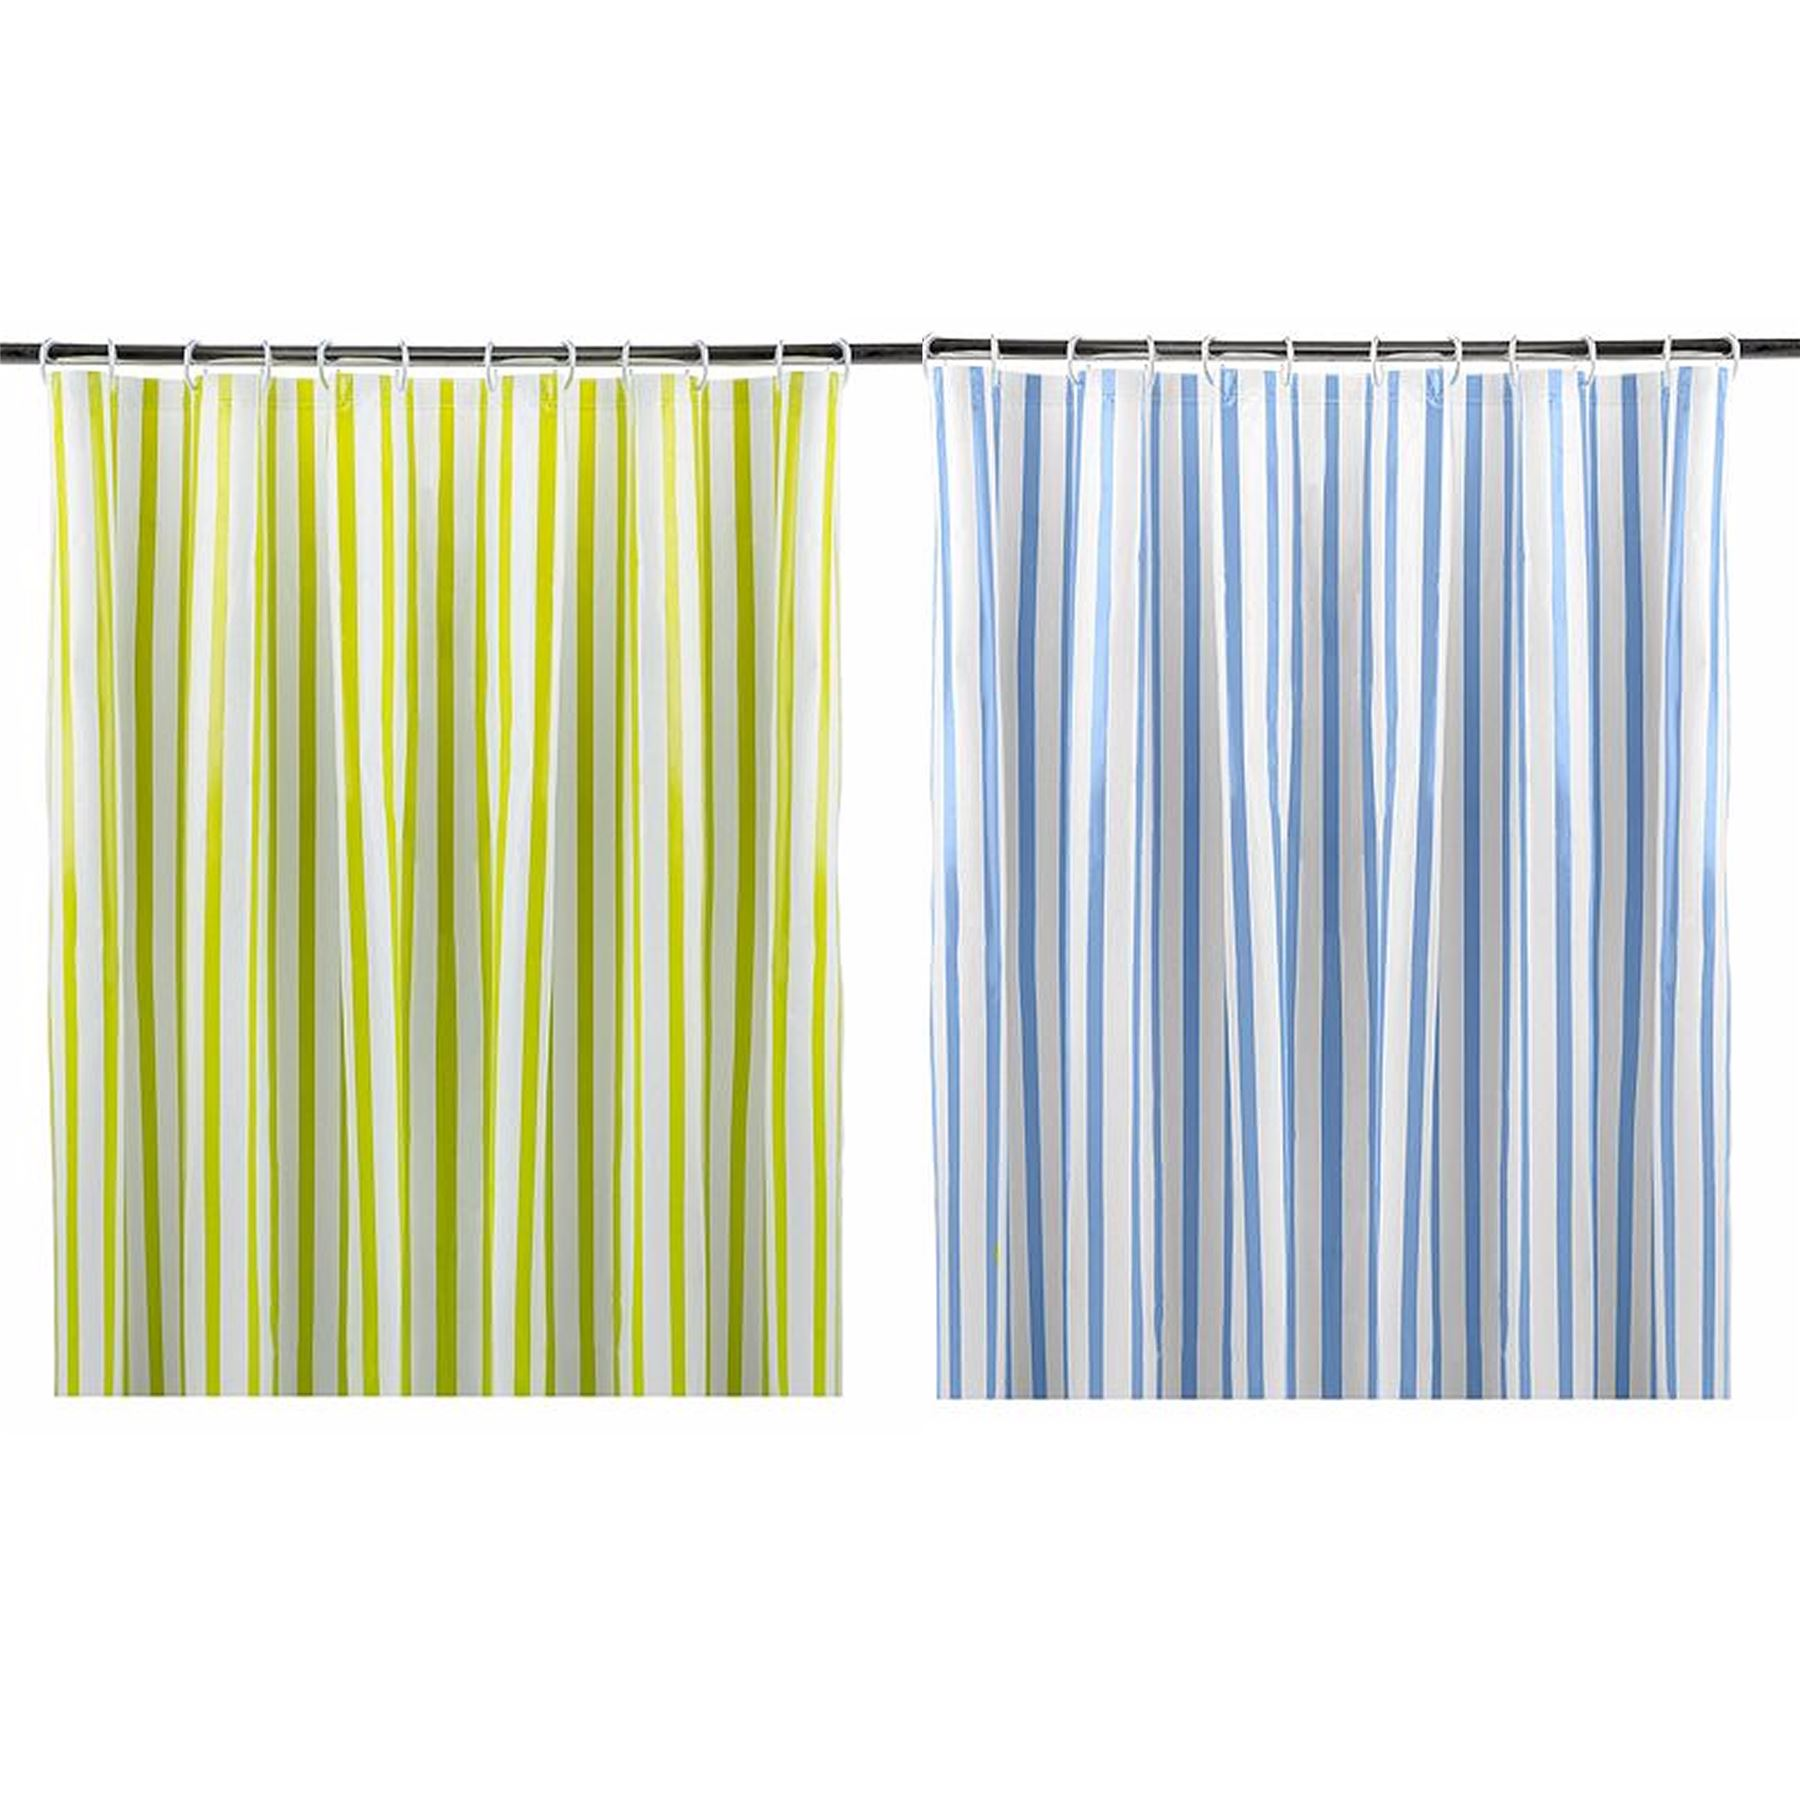 Lime Green Or Blue Retro Striped Shower Curtains 180x180cm Eyelet Ring Top